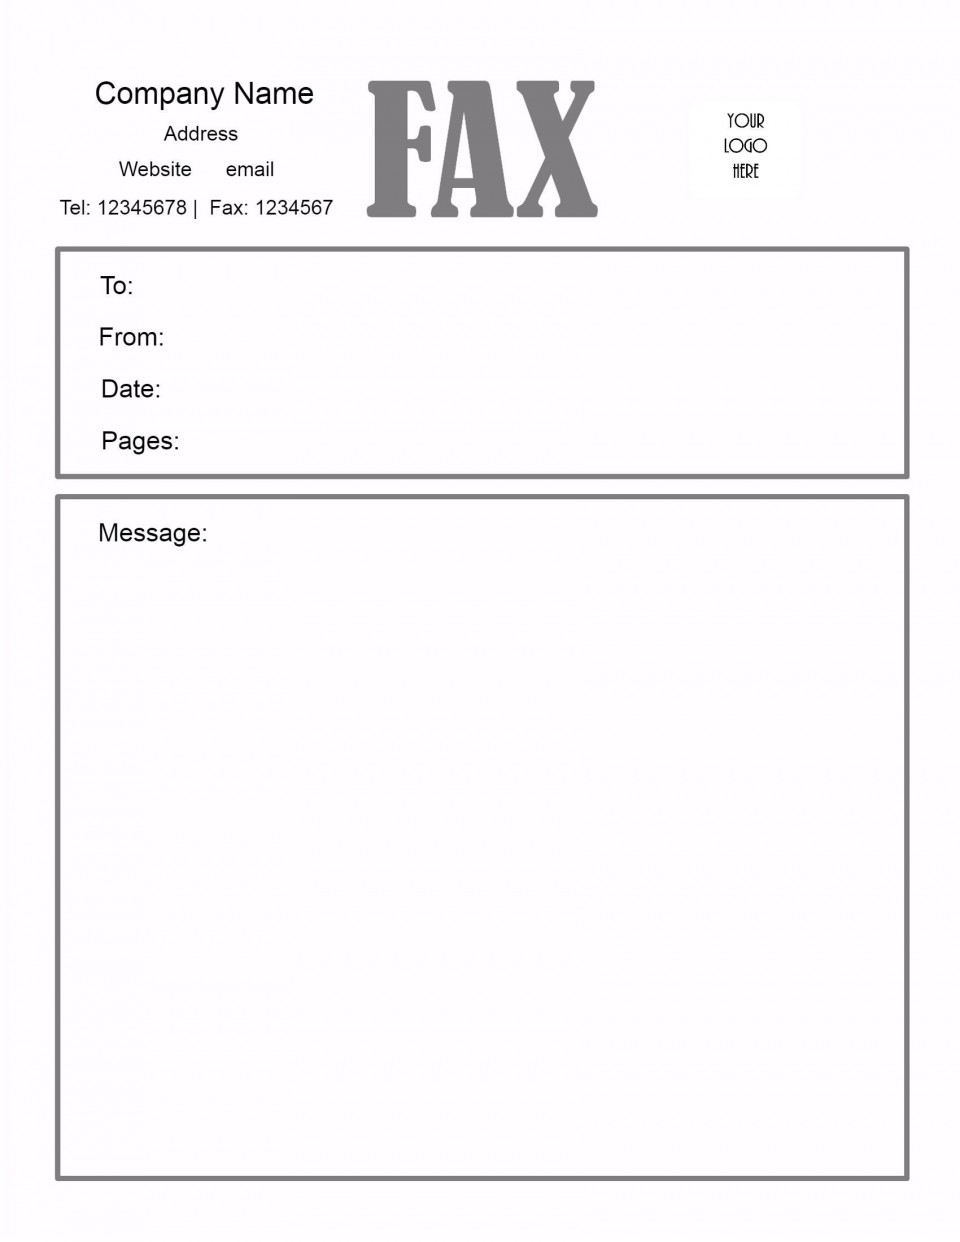 005 Awesome General Fax Cover Letter Template Inspiration  Sheet Word Confidential Example960